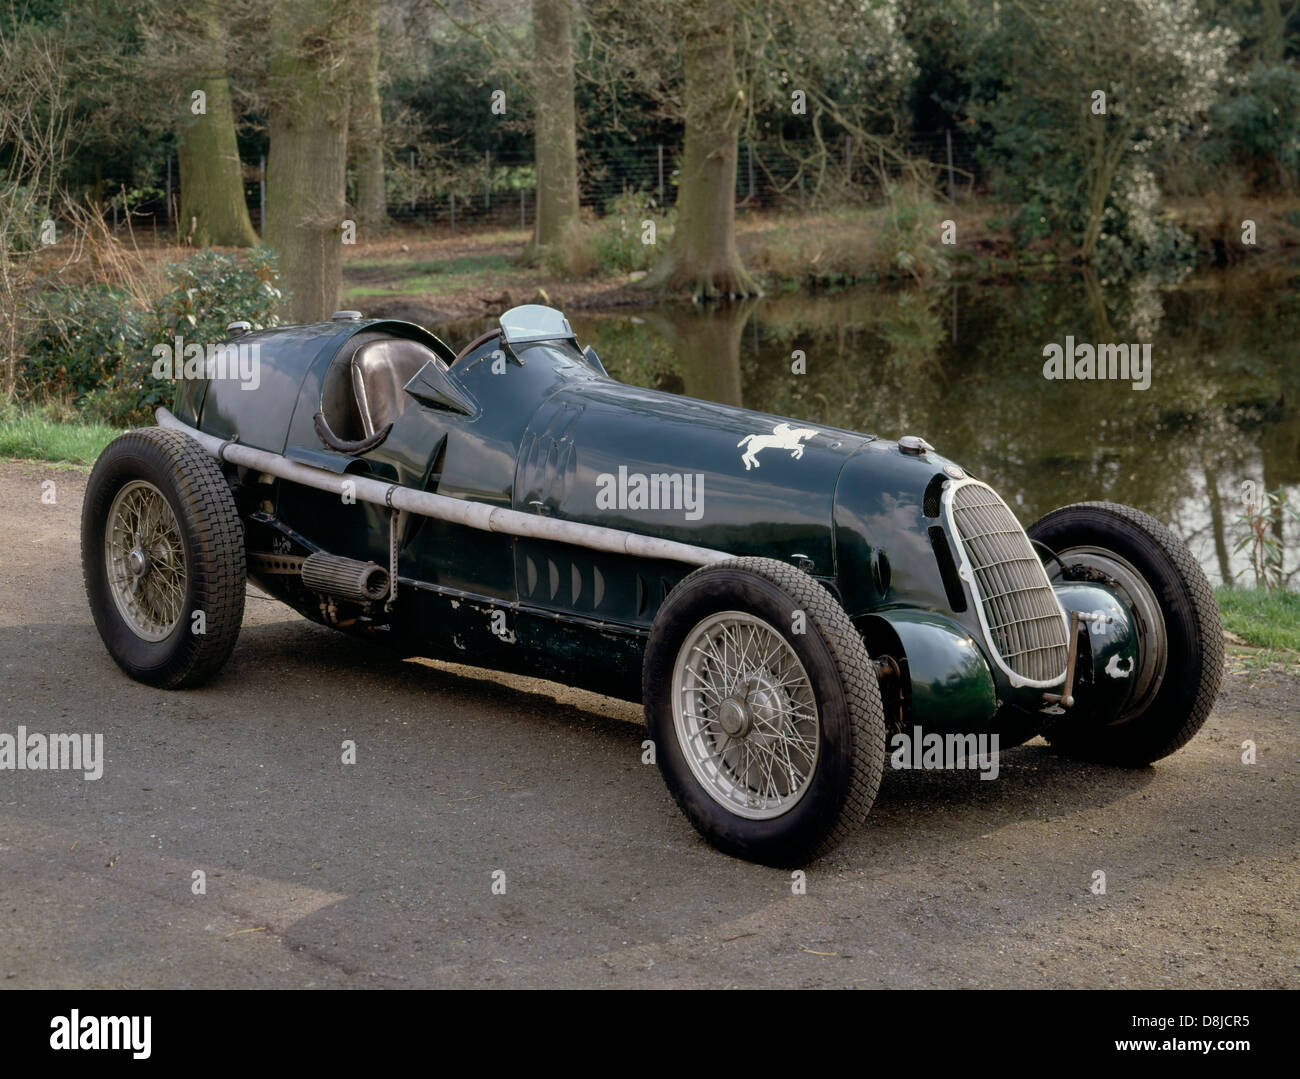 1935 alfa romeo 8c 35 3 8 litre grand prix single seater. Black Bedroom Furniture Sets. Home Design Ideas